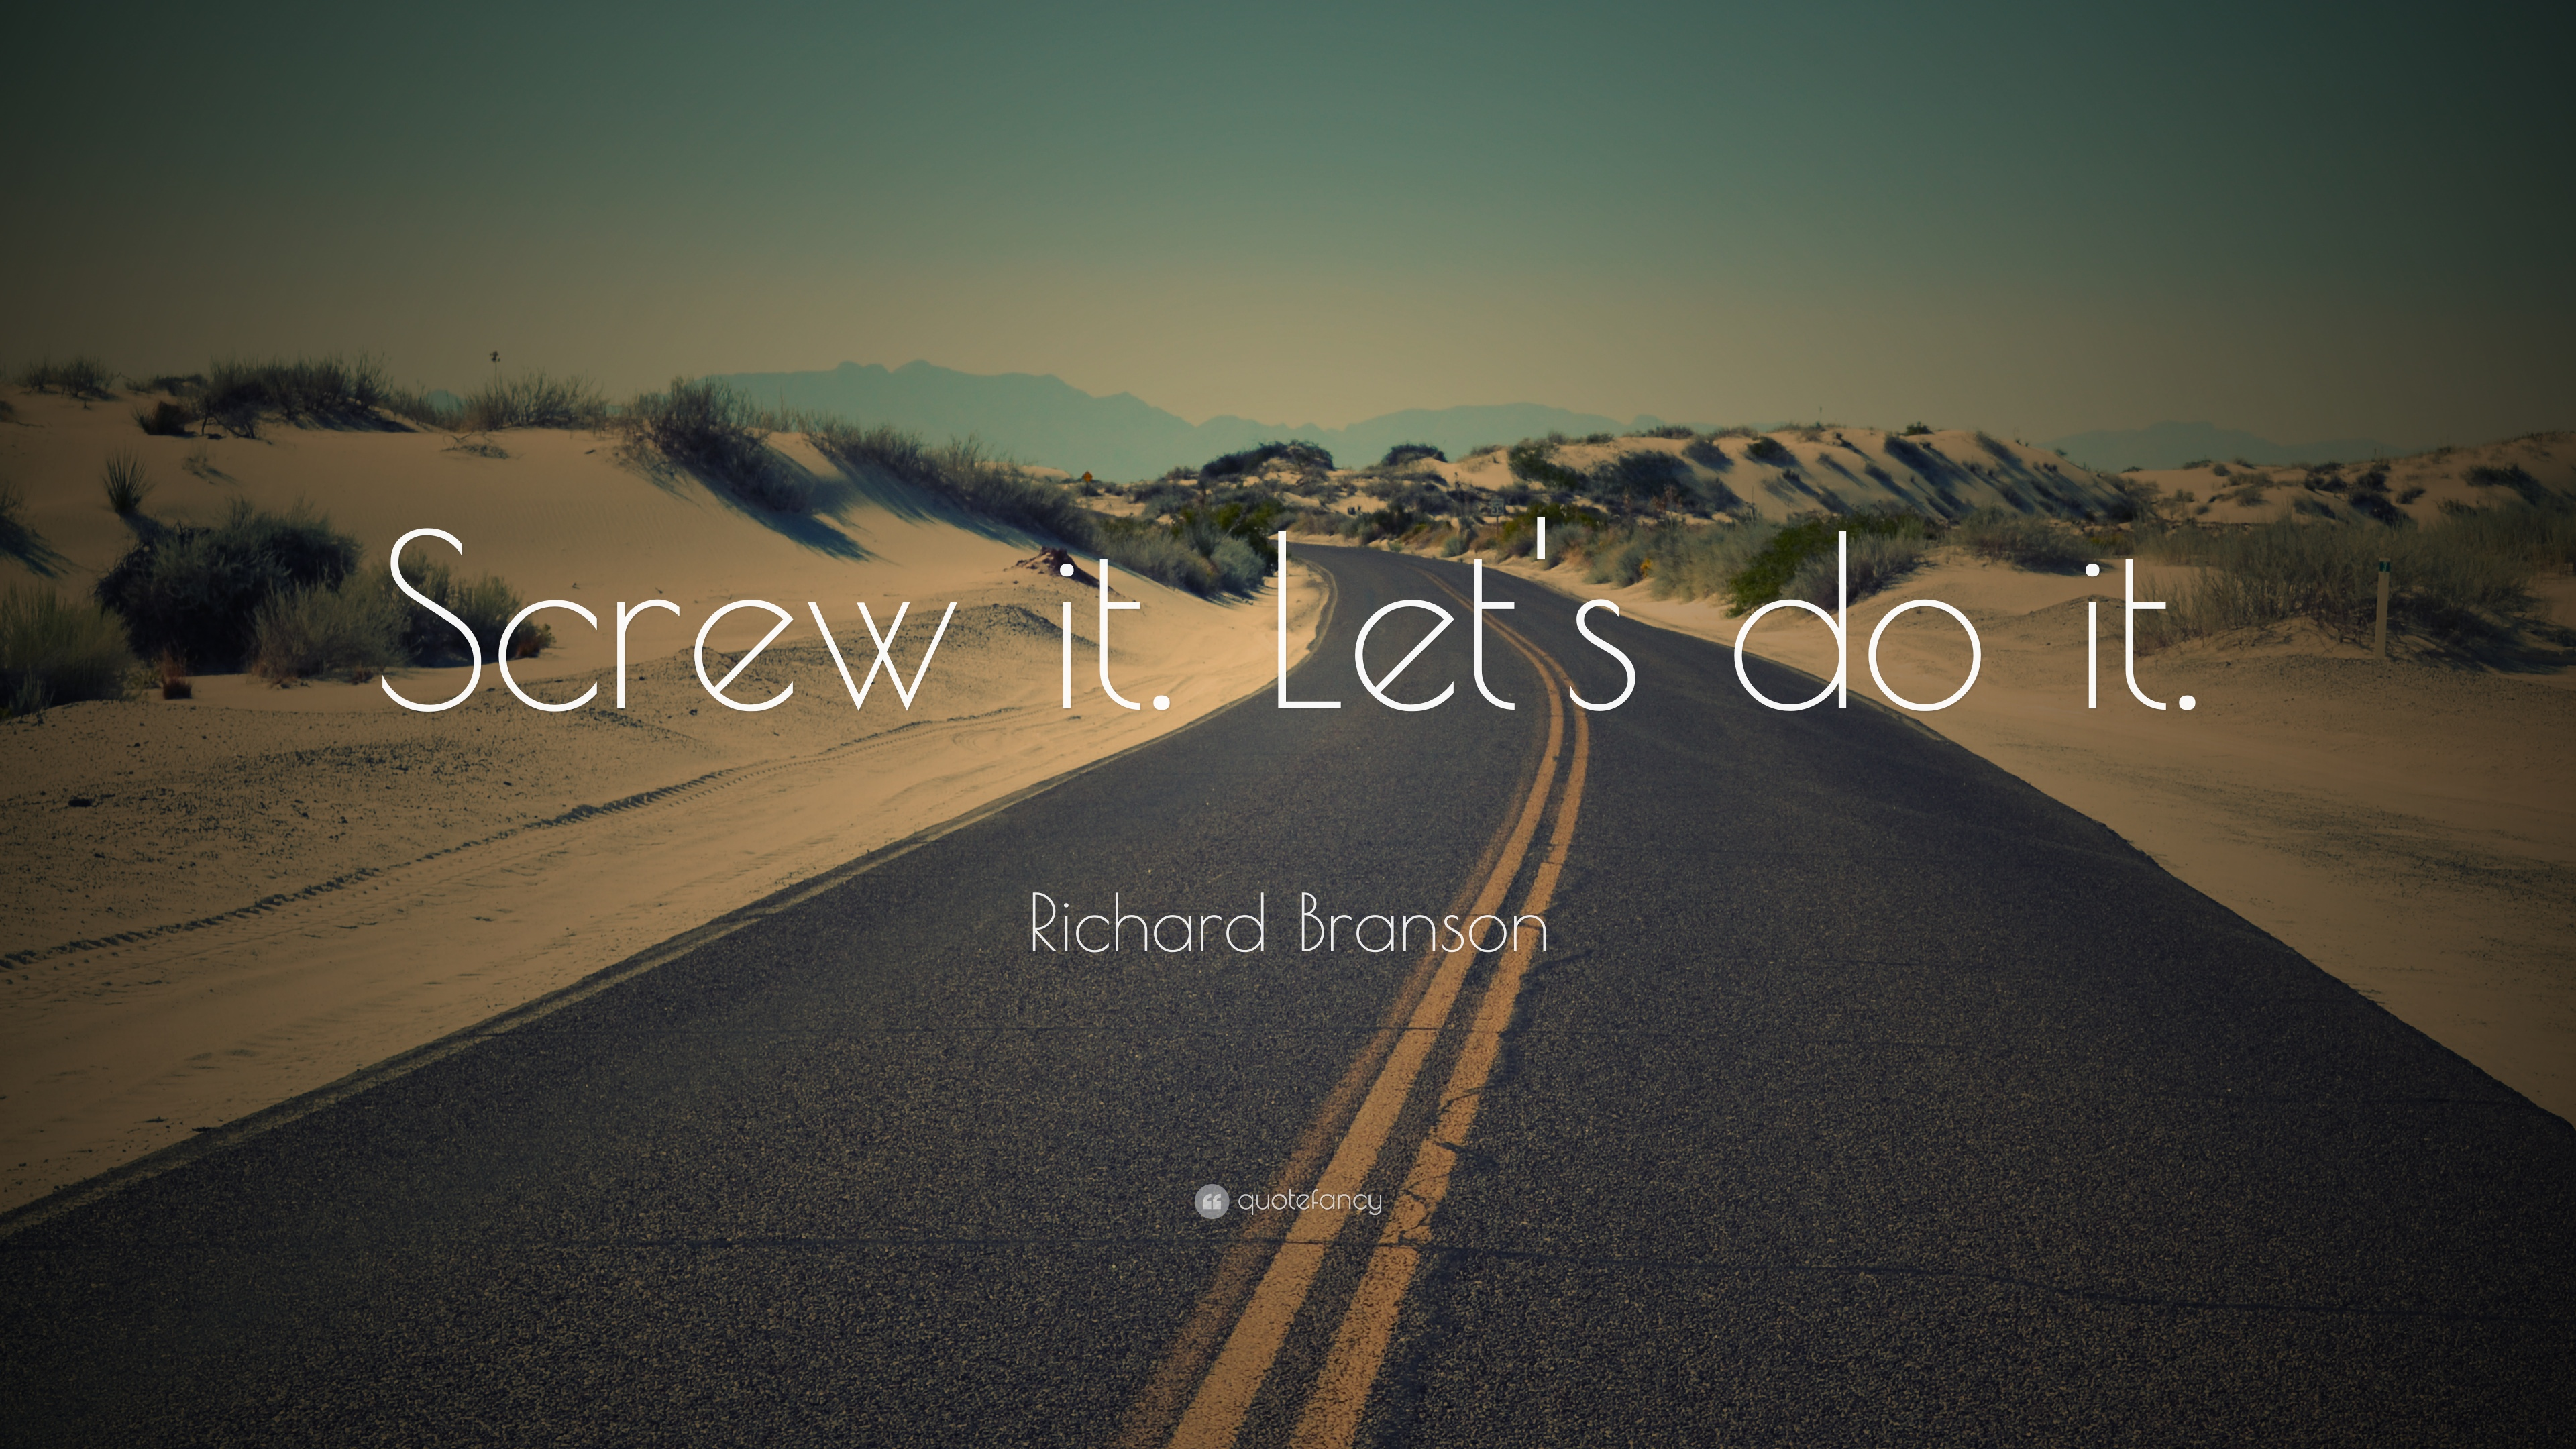 Richard branson quote screw it lets do it 35 wallpapers richard branson quote screw it lets do it voltagebd Image collections